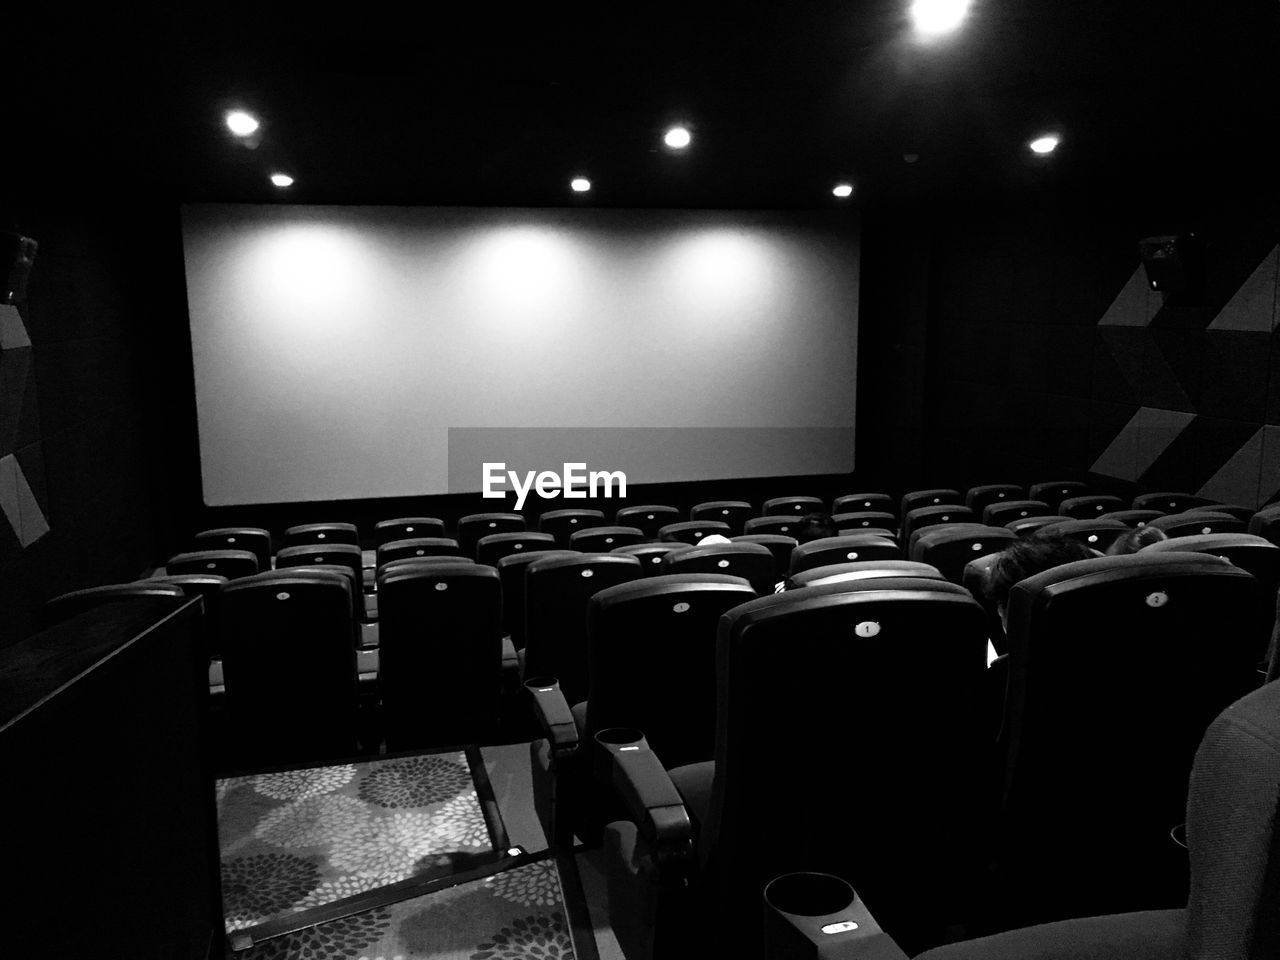 movie theater, arts culture and entertainment, indoors, in a row, illuminated, chair, film industry, seat, projection equipment, auditorium, movie, no people, day